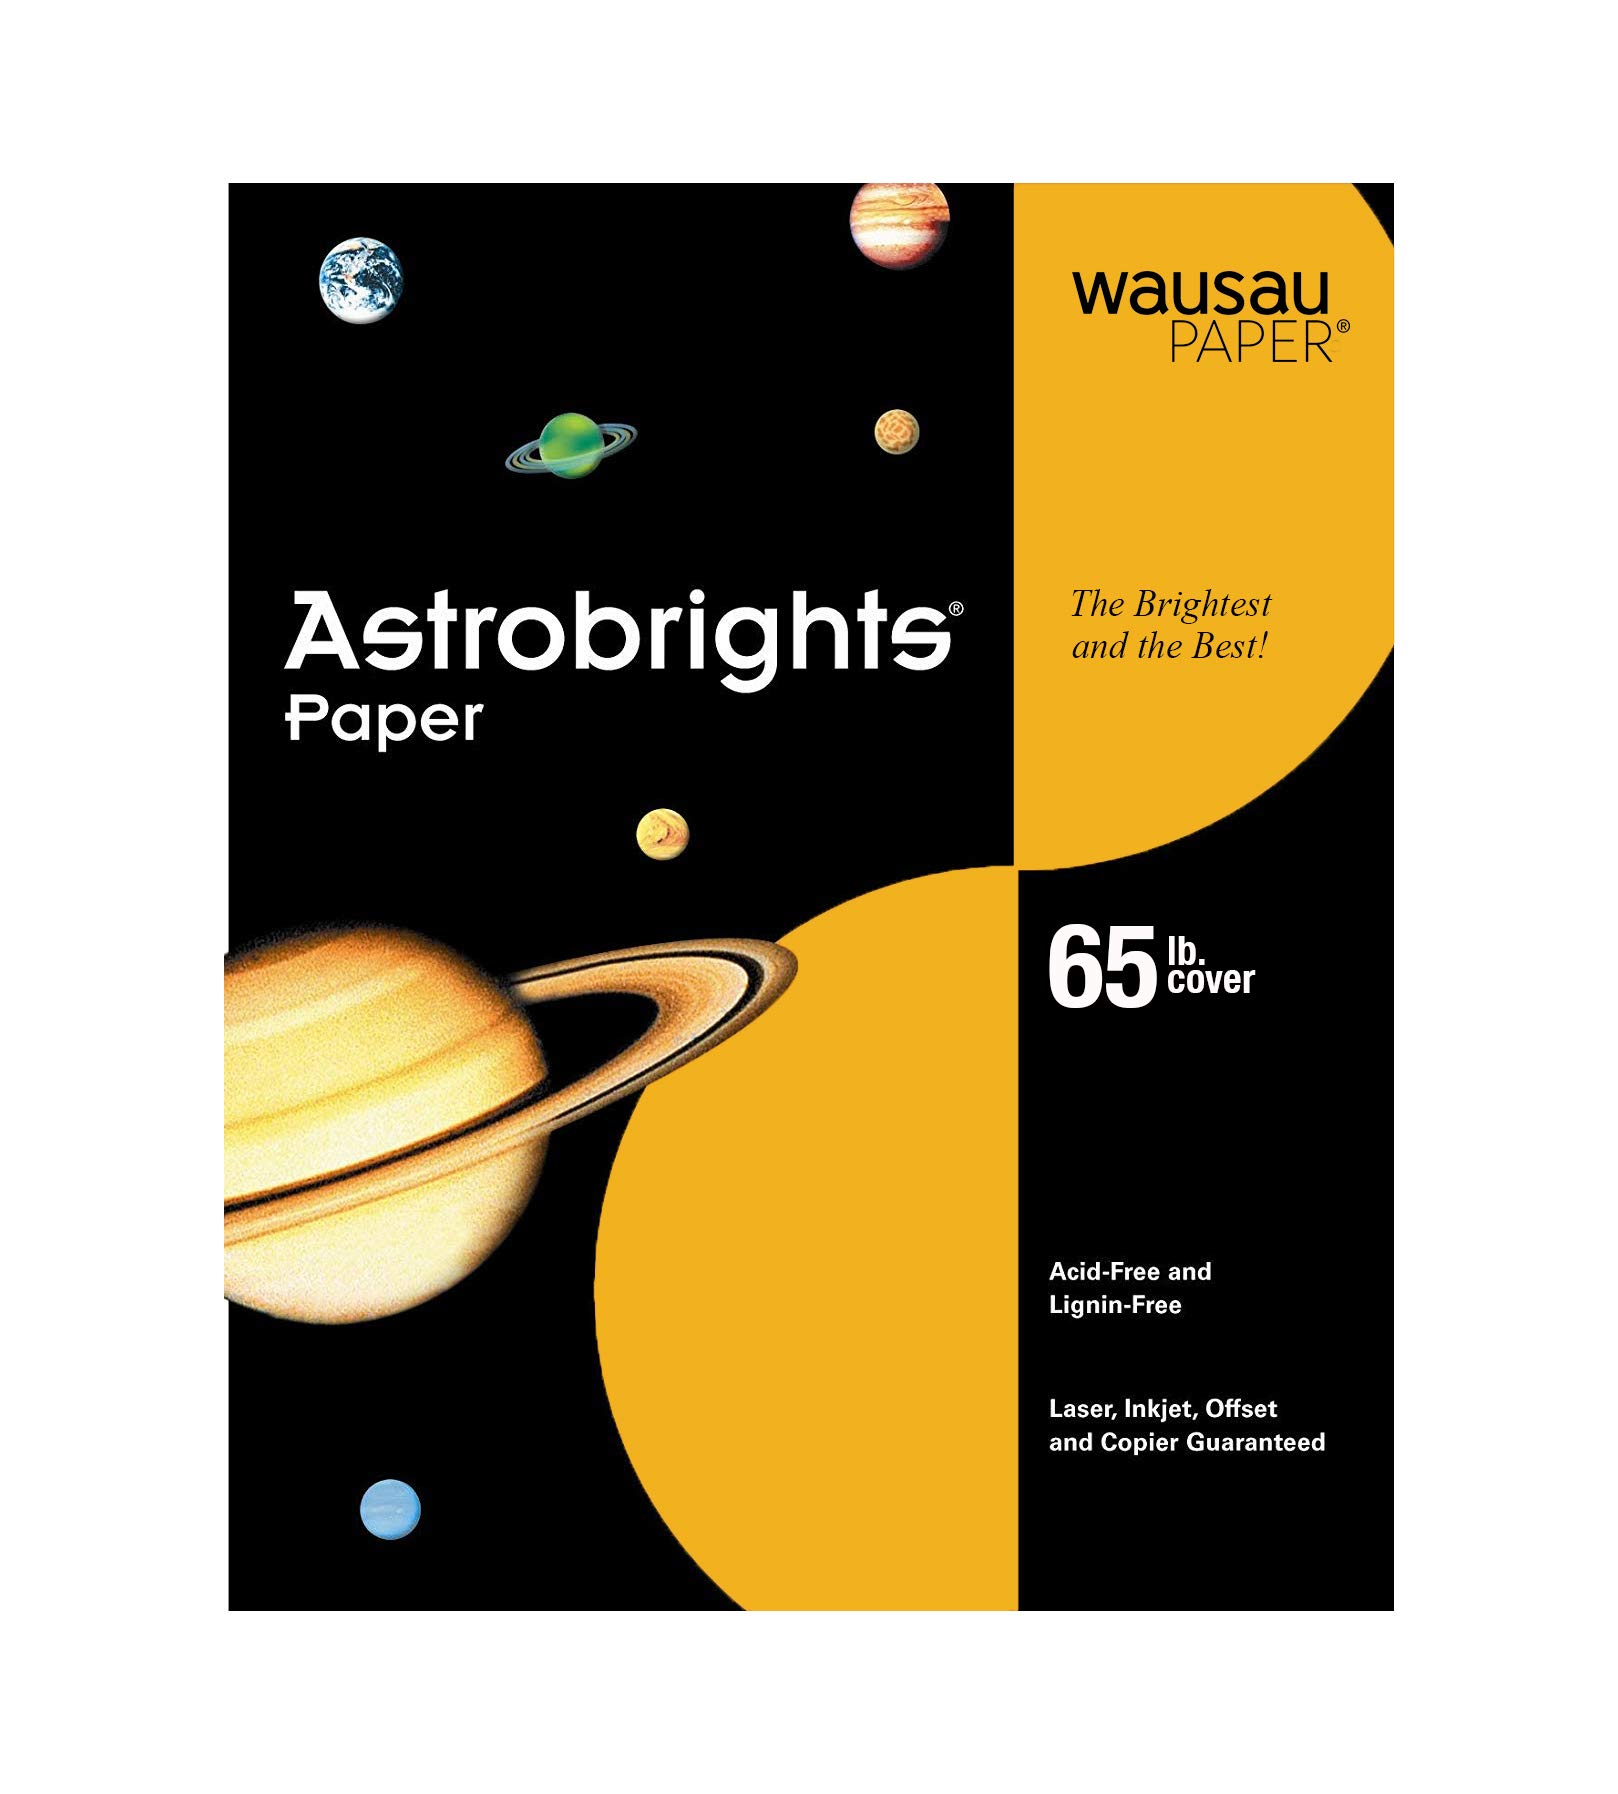 Wausau Astrobrights Premium Paper, 65 lb, 8.5 x 11 Inches, Galaxy Gold, 50 Sheets (22771)